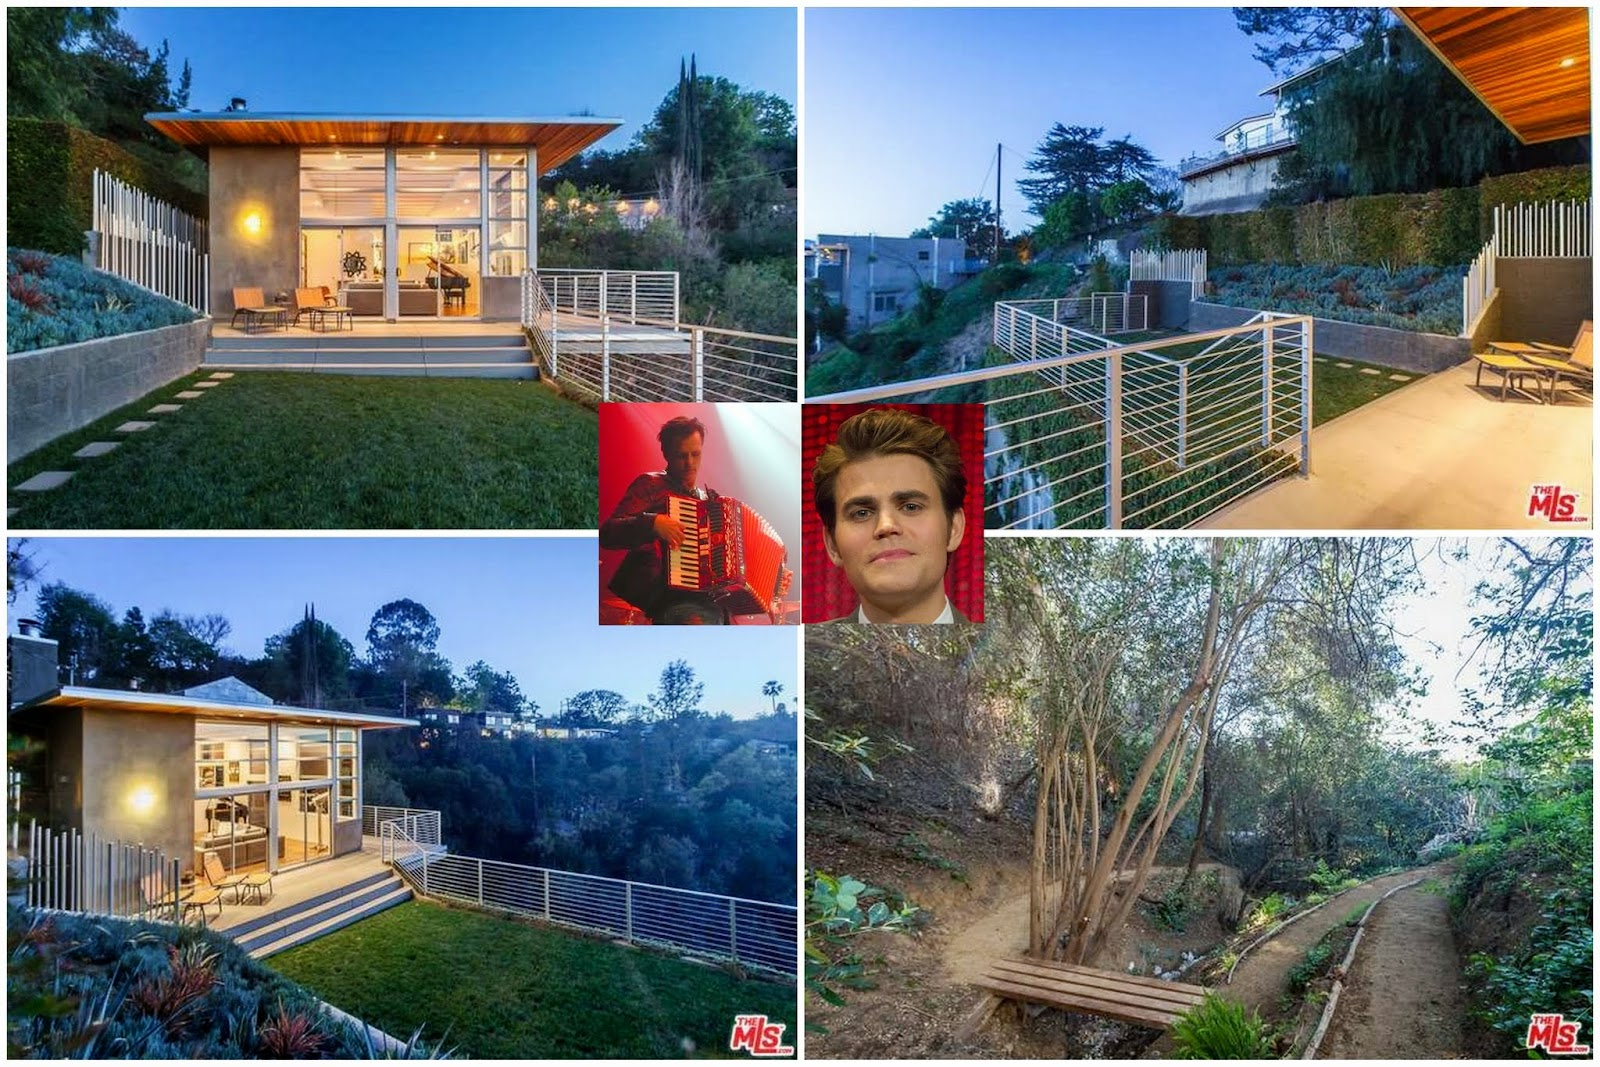 Celeb r e paul wesley of the vampire diaries nabs for Wesley house